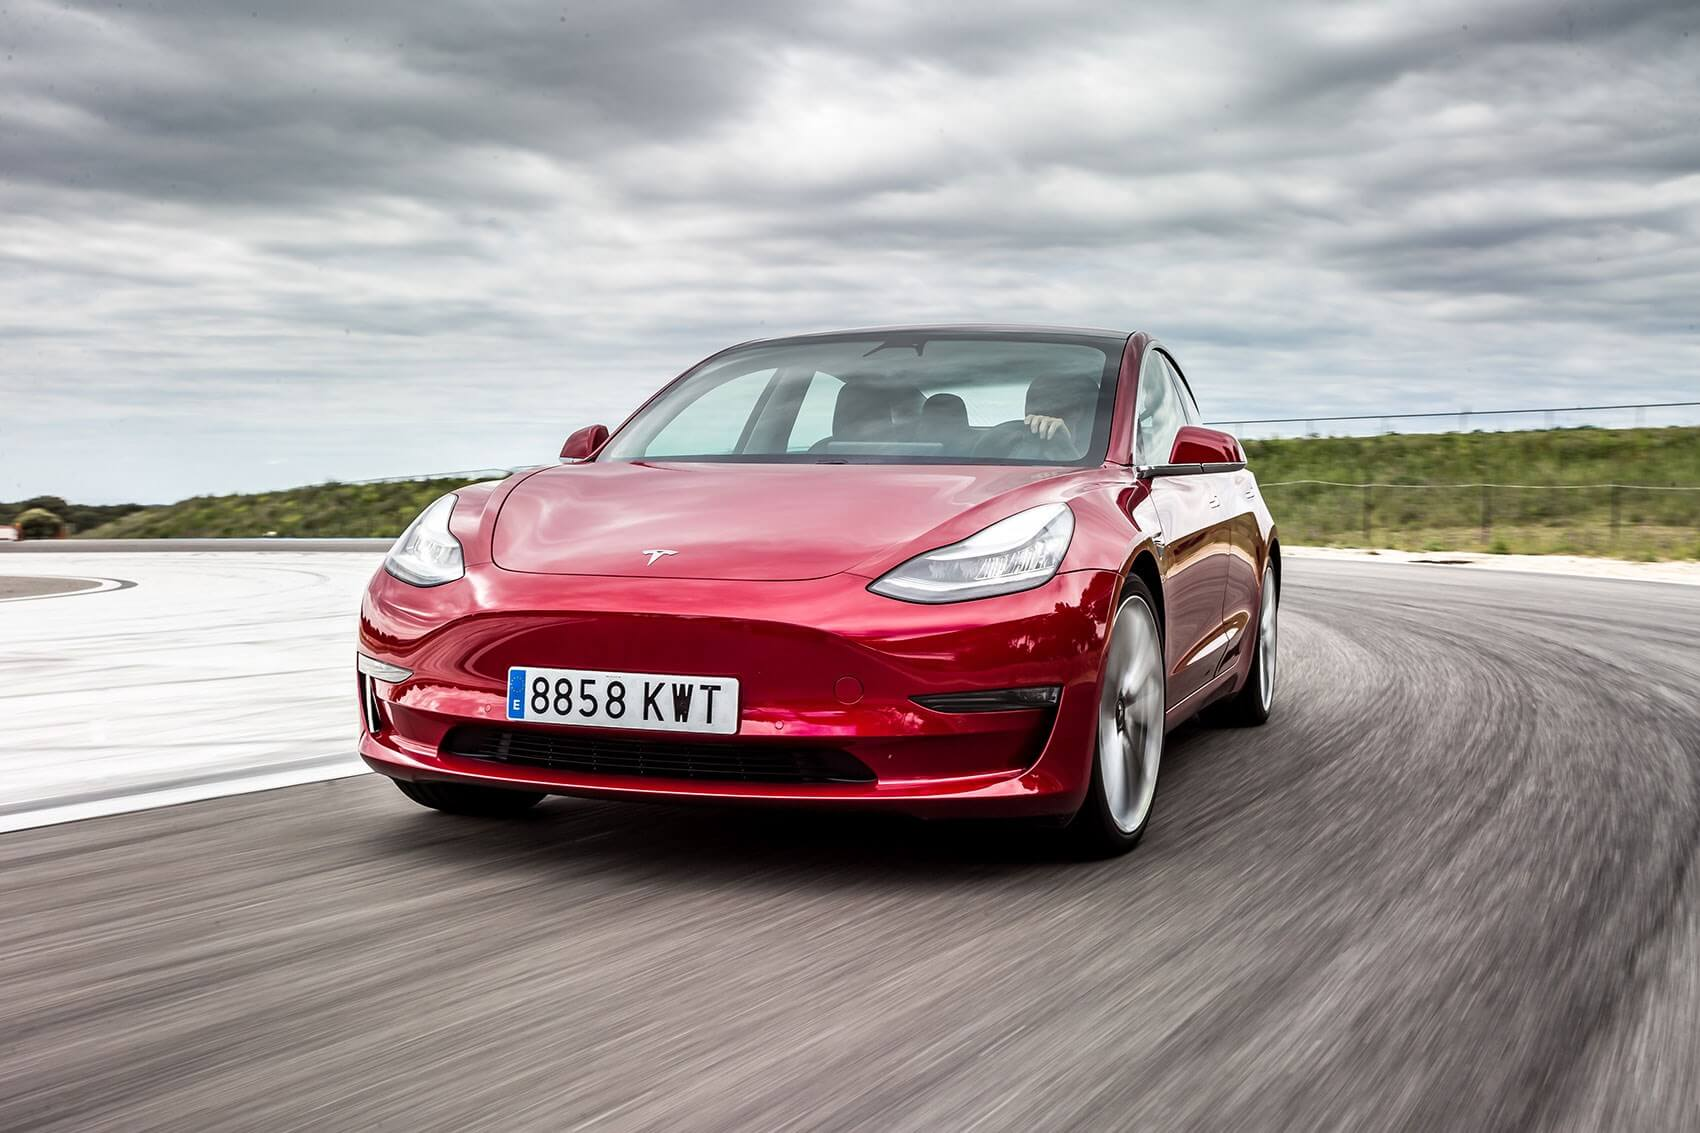 Tesla is leading the UK's electric car sales